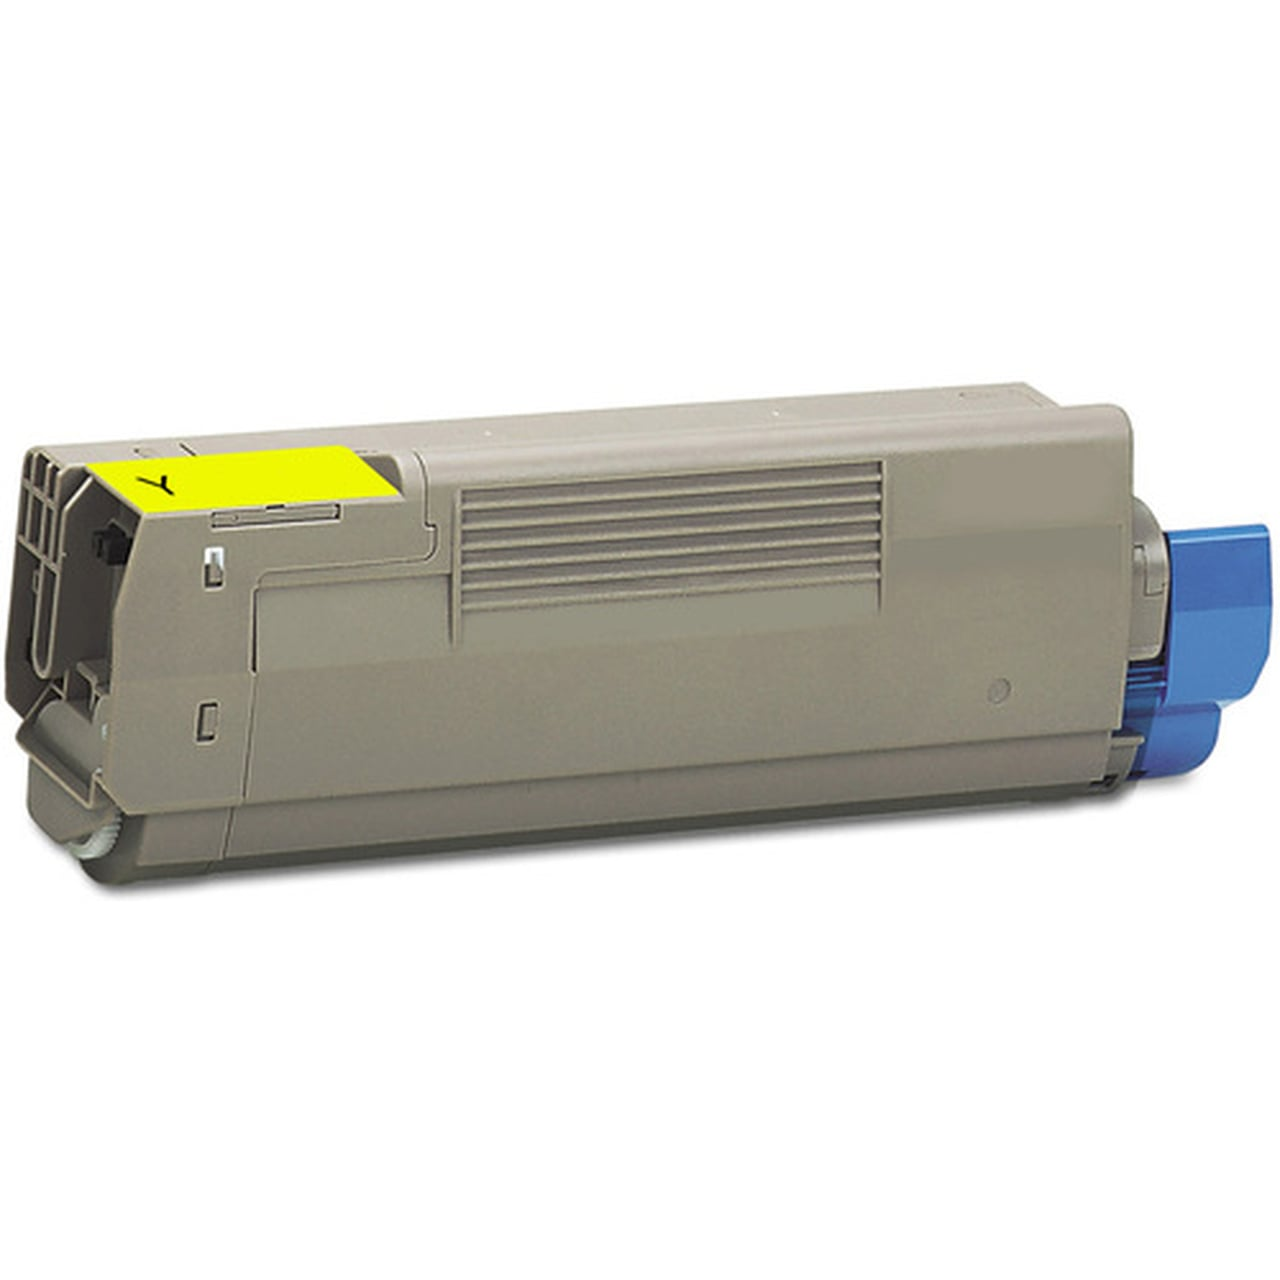 46507501 Toner Cartridge - Okidata Compatible (Yellow)